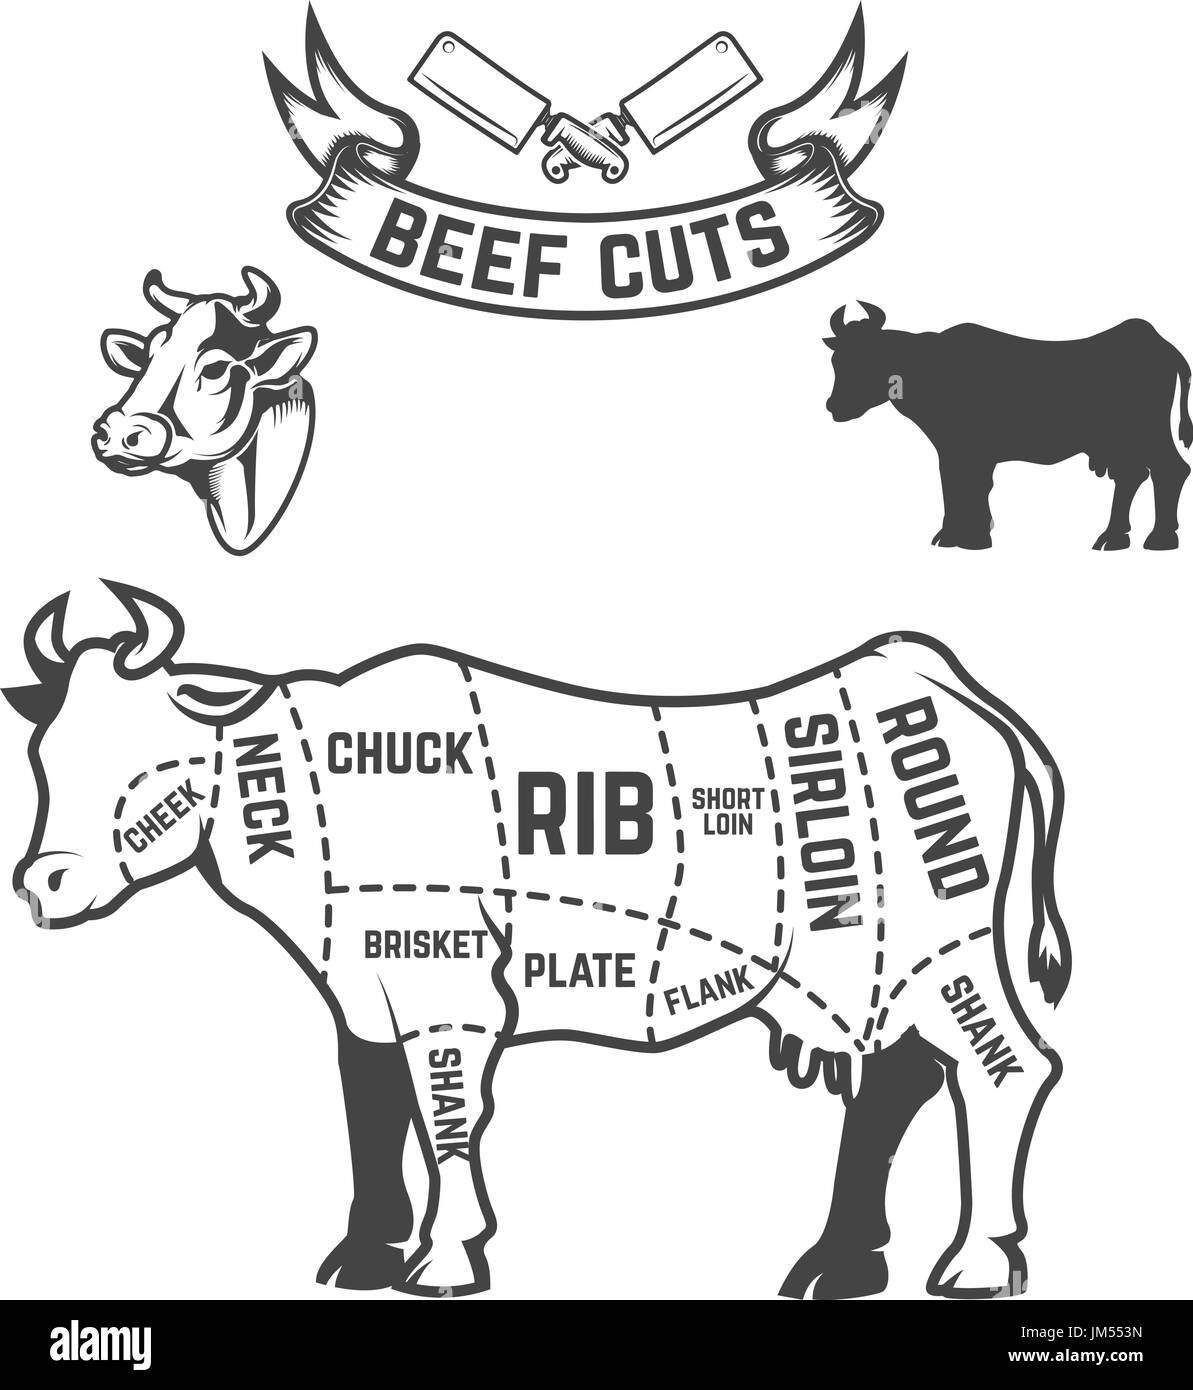 hight resolution of beef cuts butcher diagram cow illustrations on white background design elements for poster